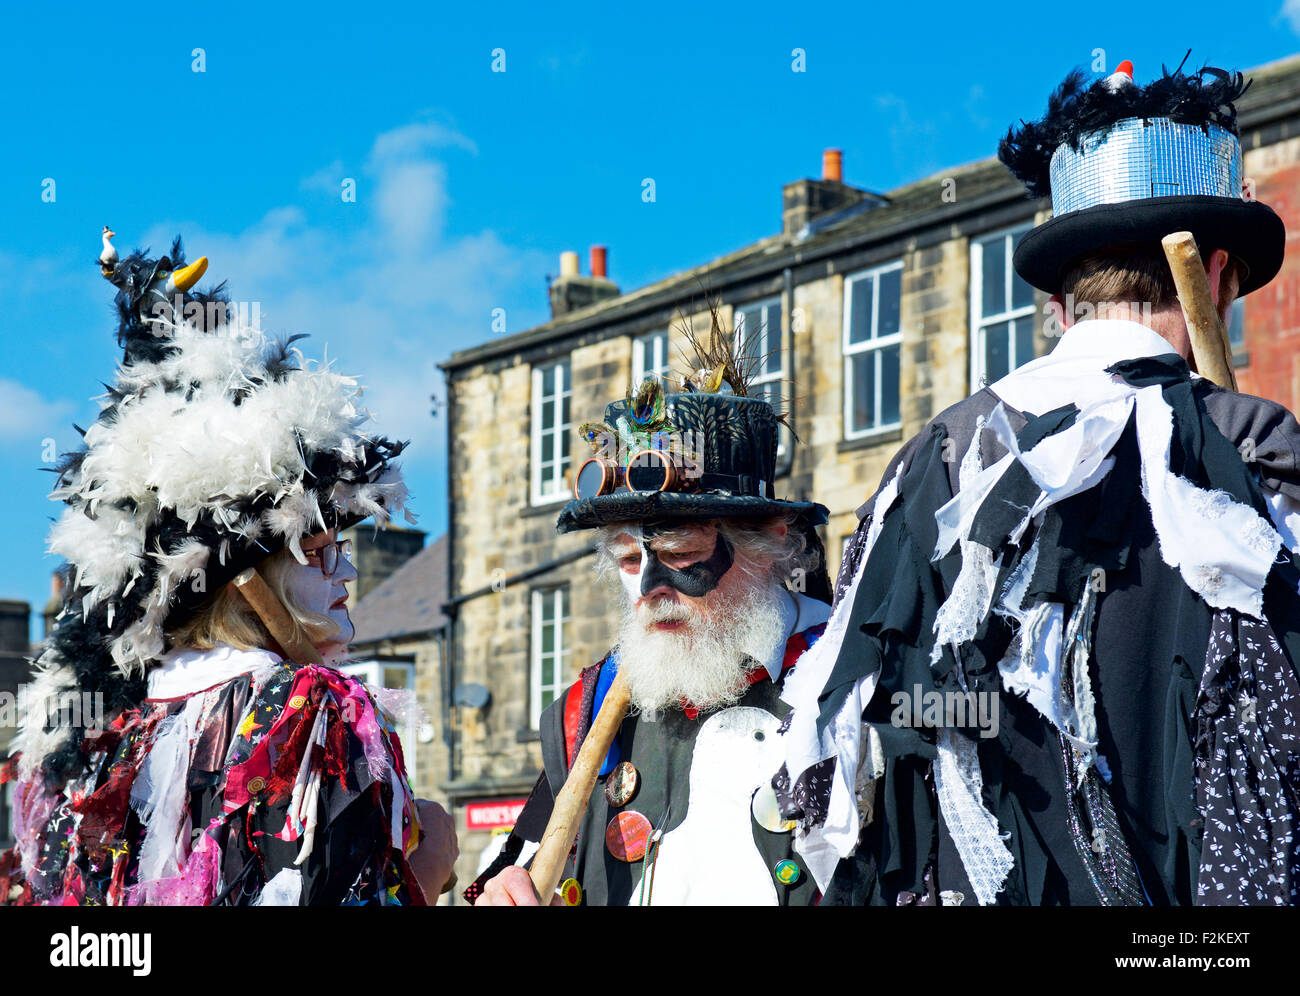 Members of the Wayzgoose Morris Dancing Troupe, performing at the Otley Folk festival, West Yorkshire, England UK - Stock Image